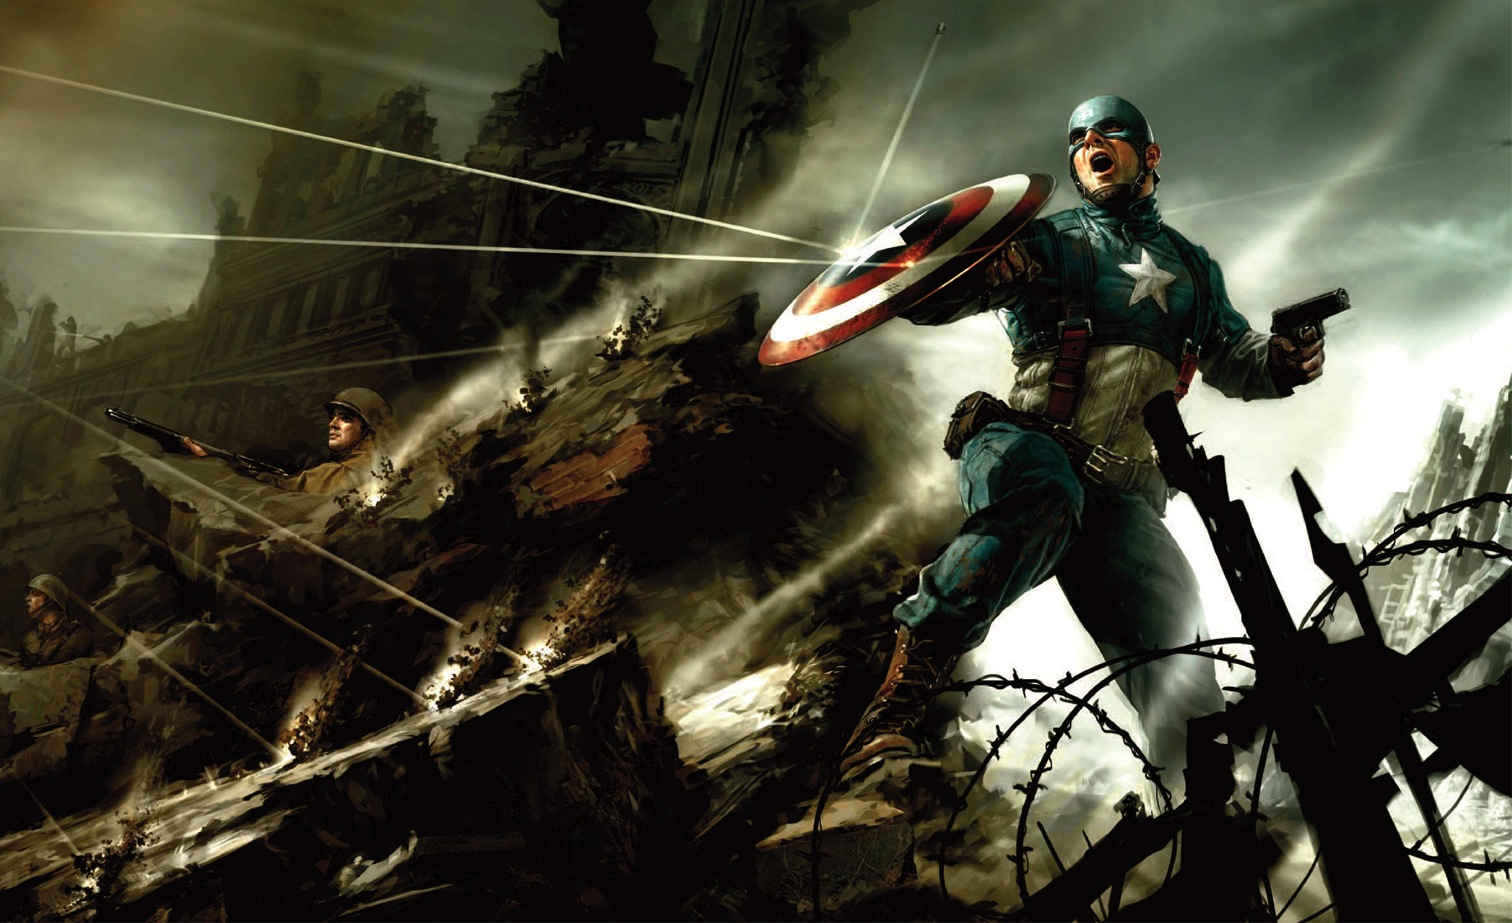 CAPTAIN AMERICA THE WINTER SOLDIER Wallpapers and Desktop Backgrounds 1512x923